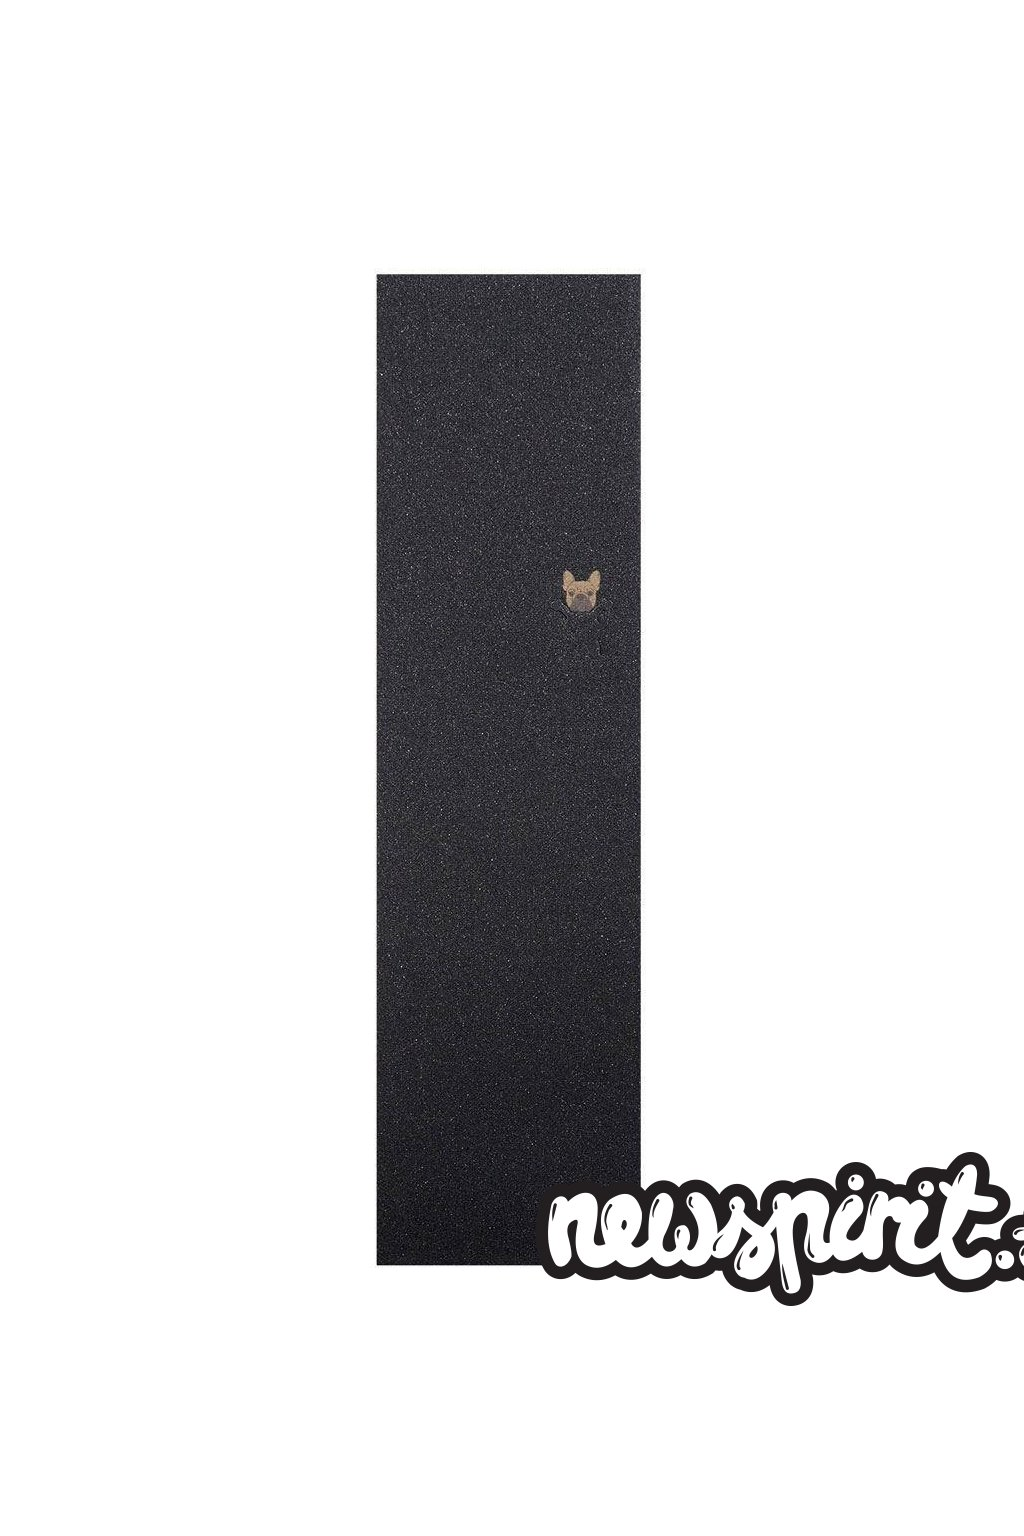 Grizzly PLG bully Grip Tape Sheet Skateboard